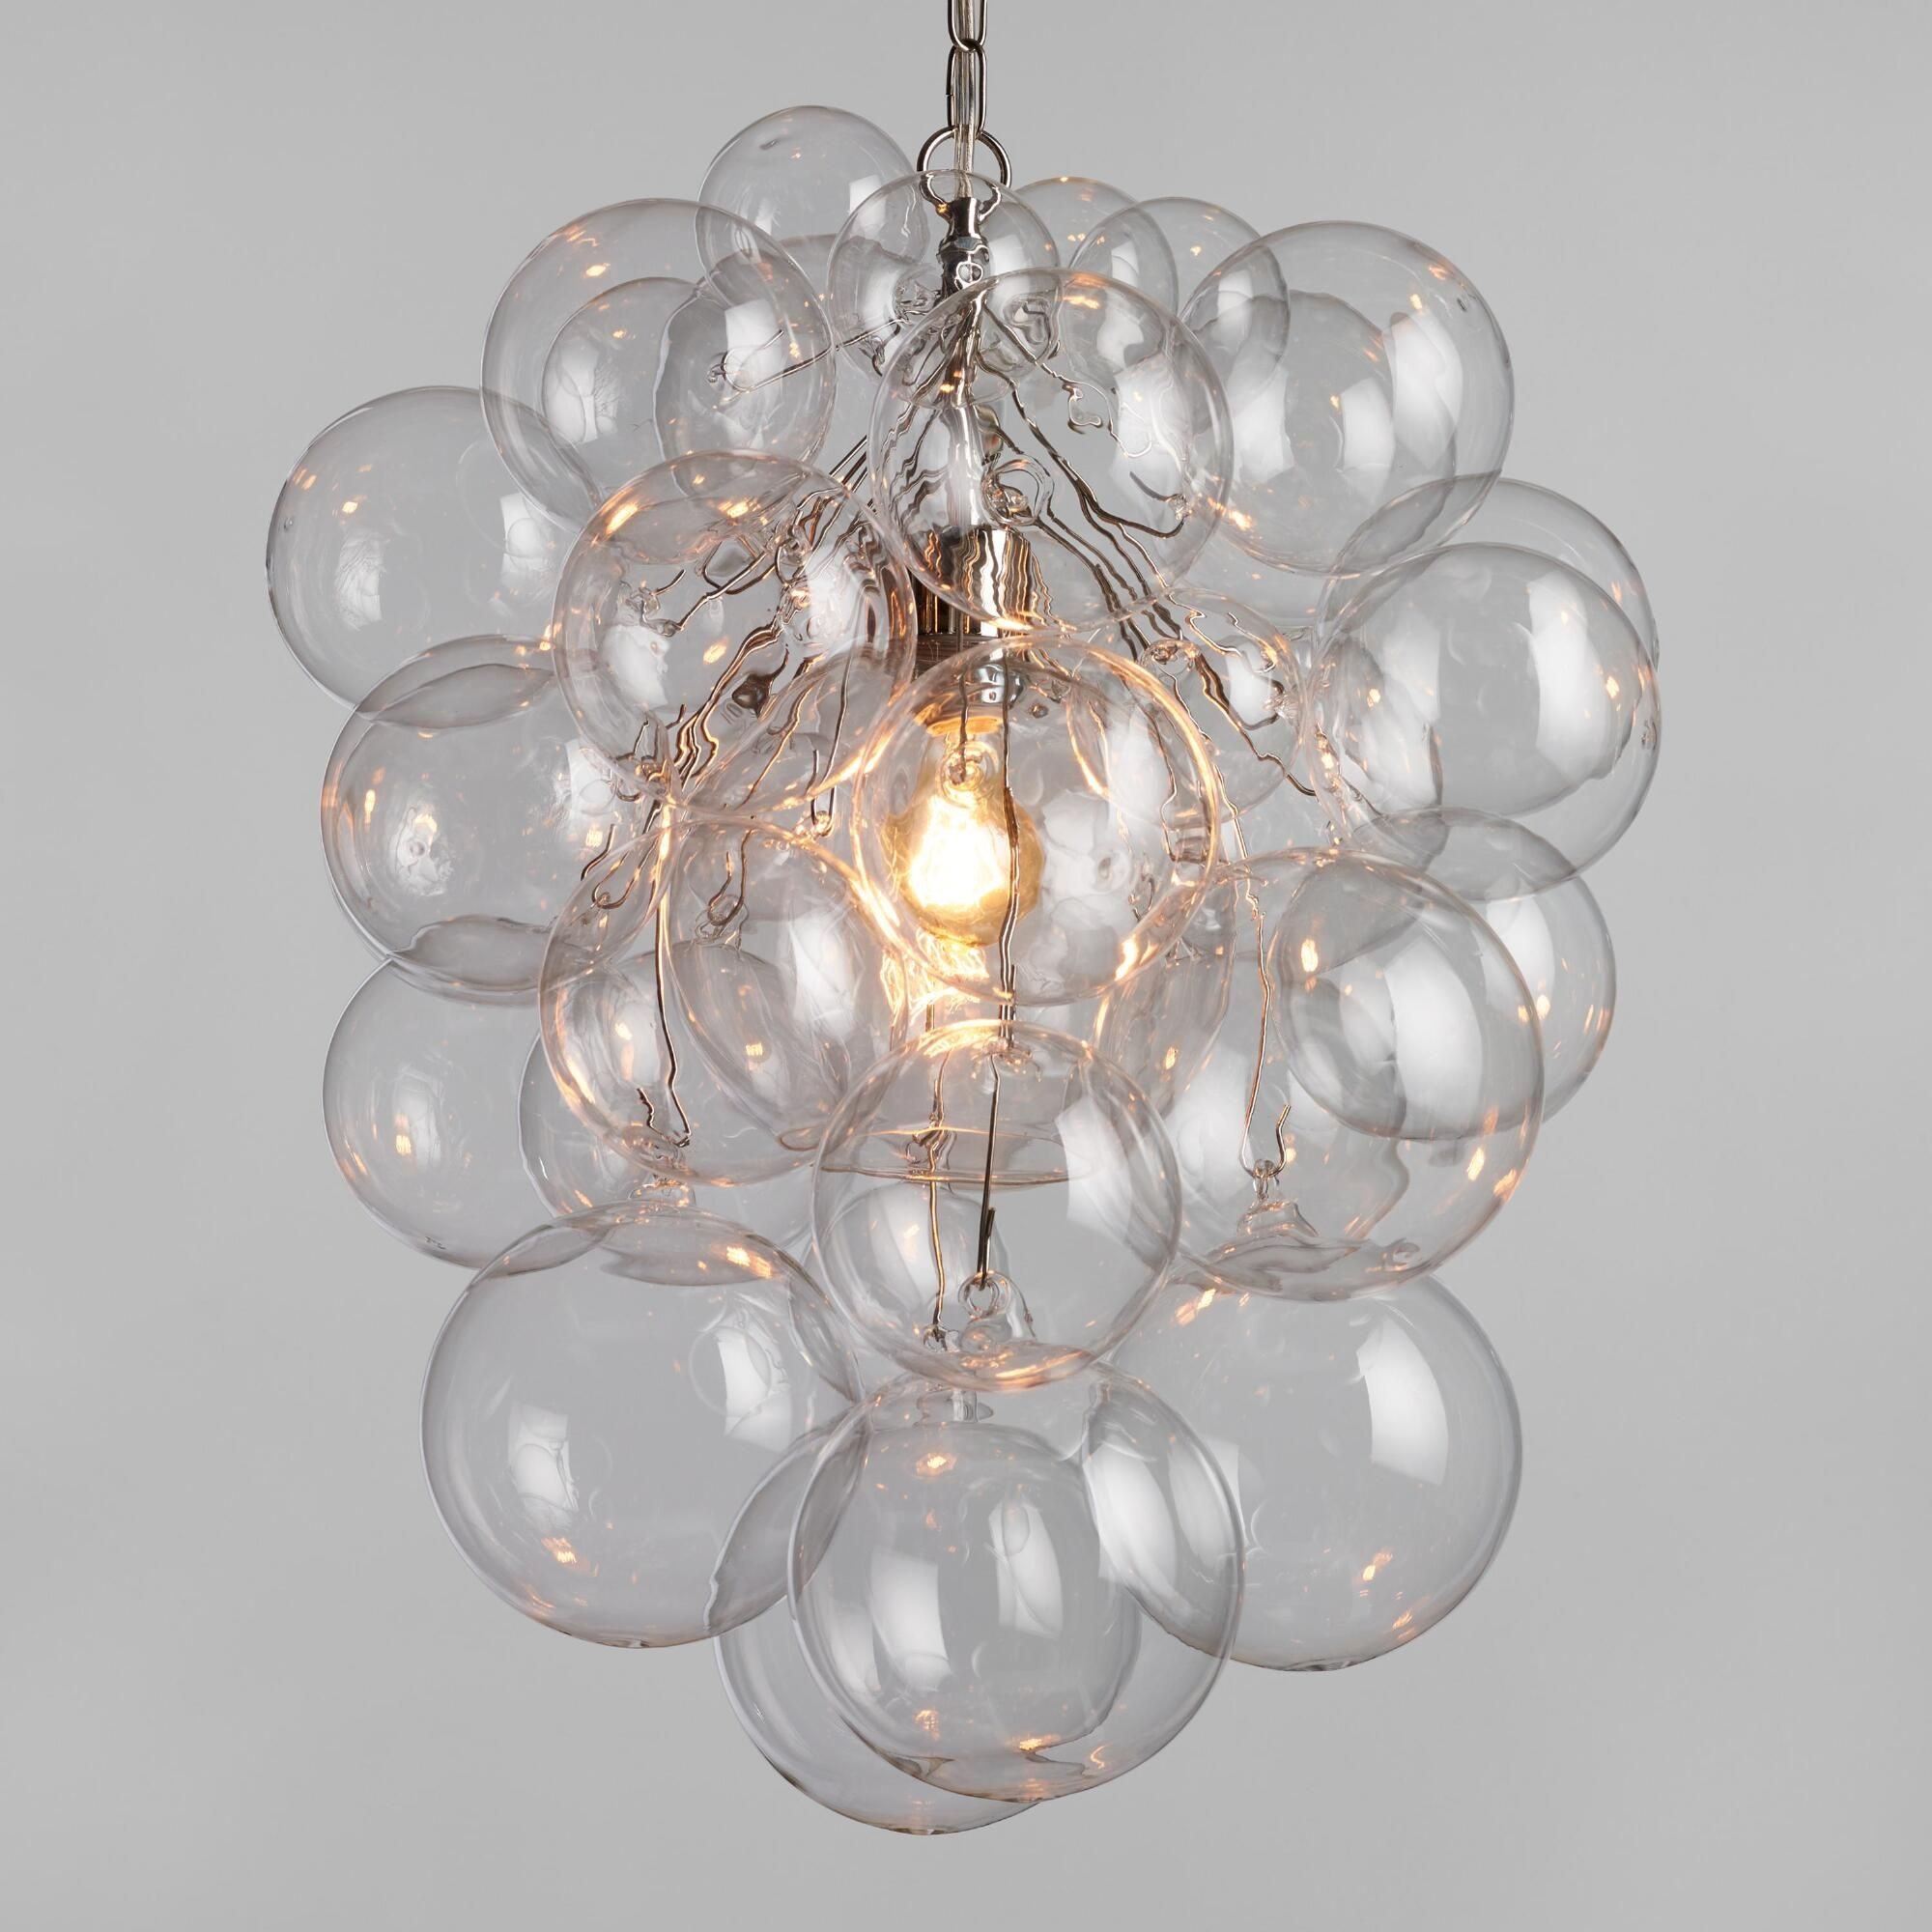 Bubble glass orb chandelier for the home bubble chandelier orb